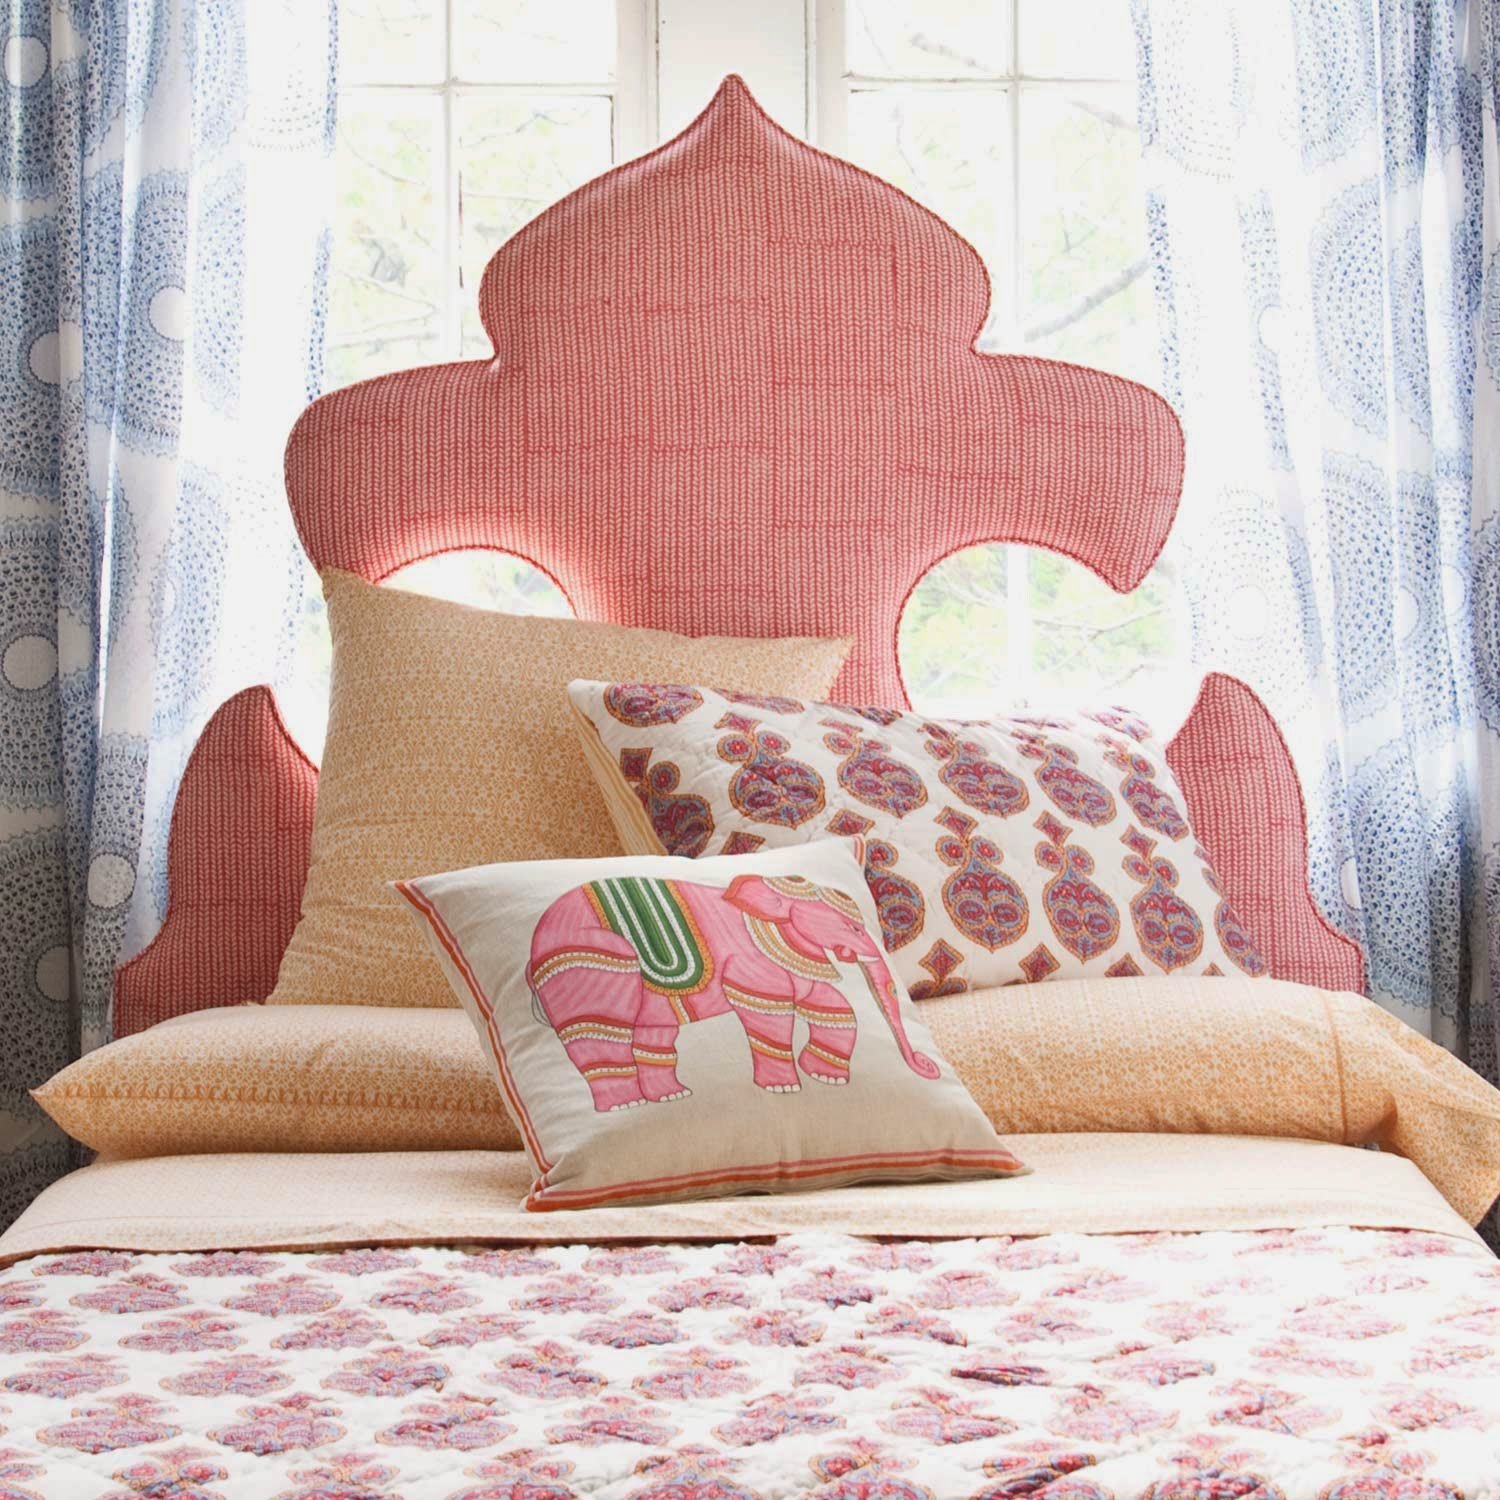 Hildreth 39 s home goods simple ways to decorate your bedroom for Ways to decorate your bedroom